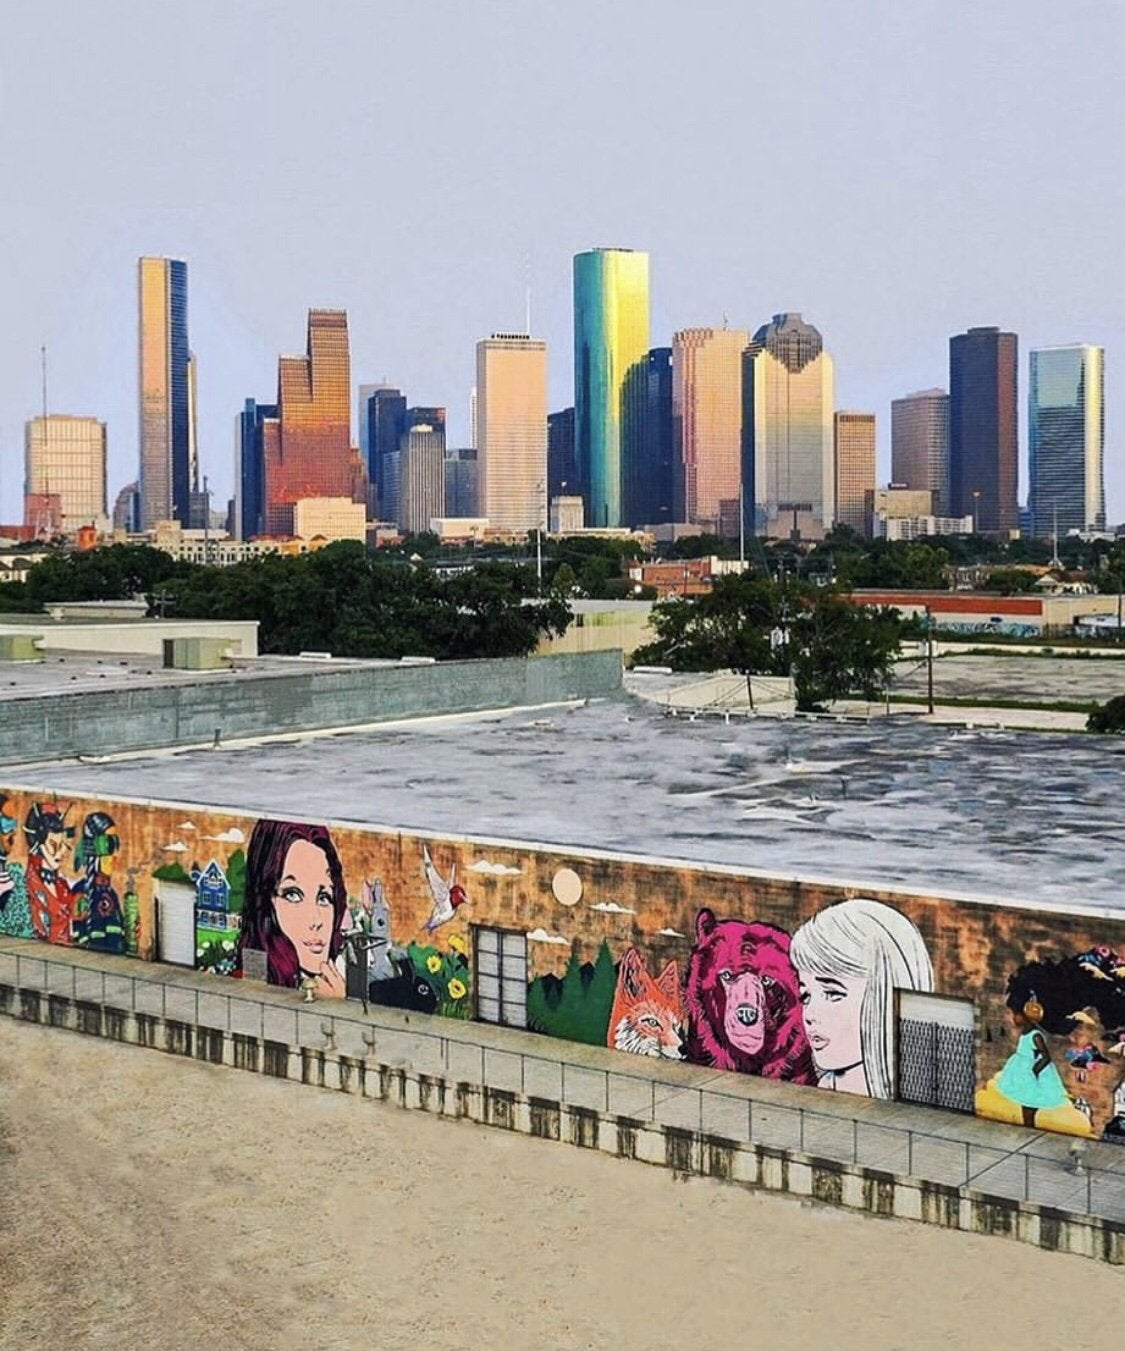 Houston wall artwork pops up